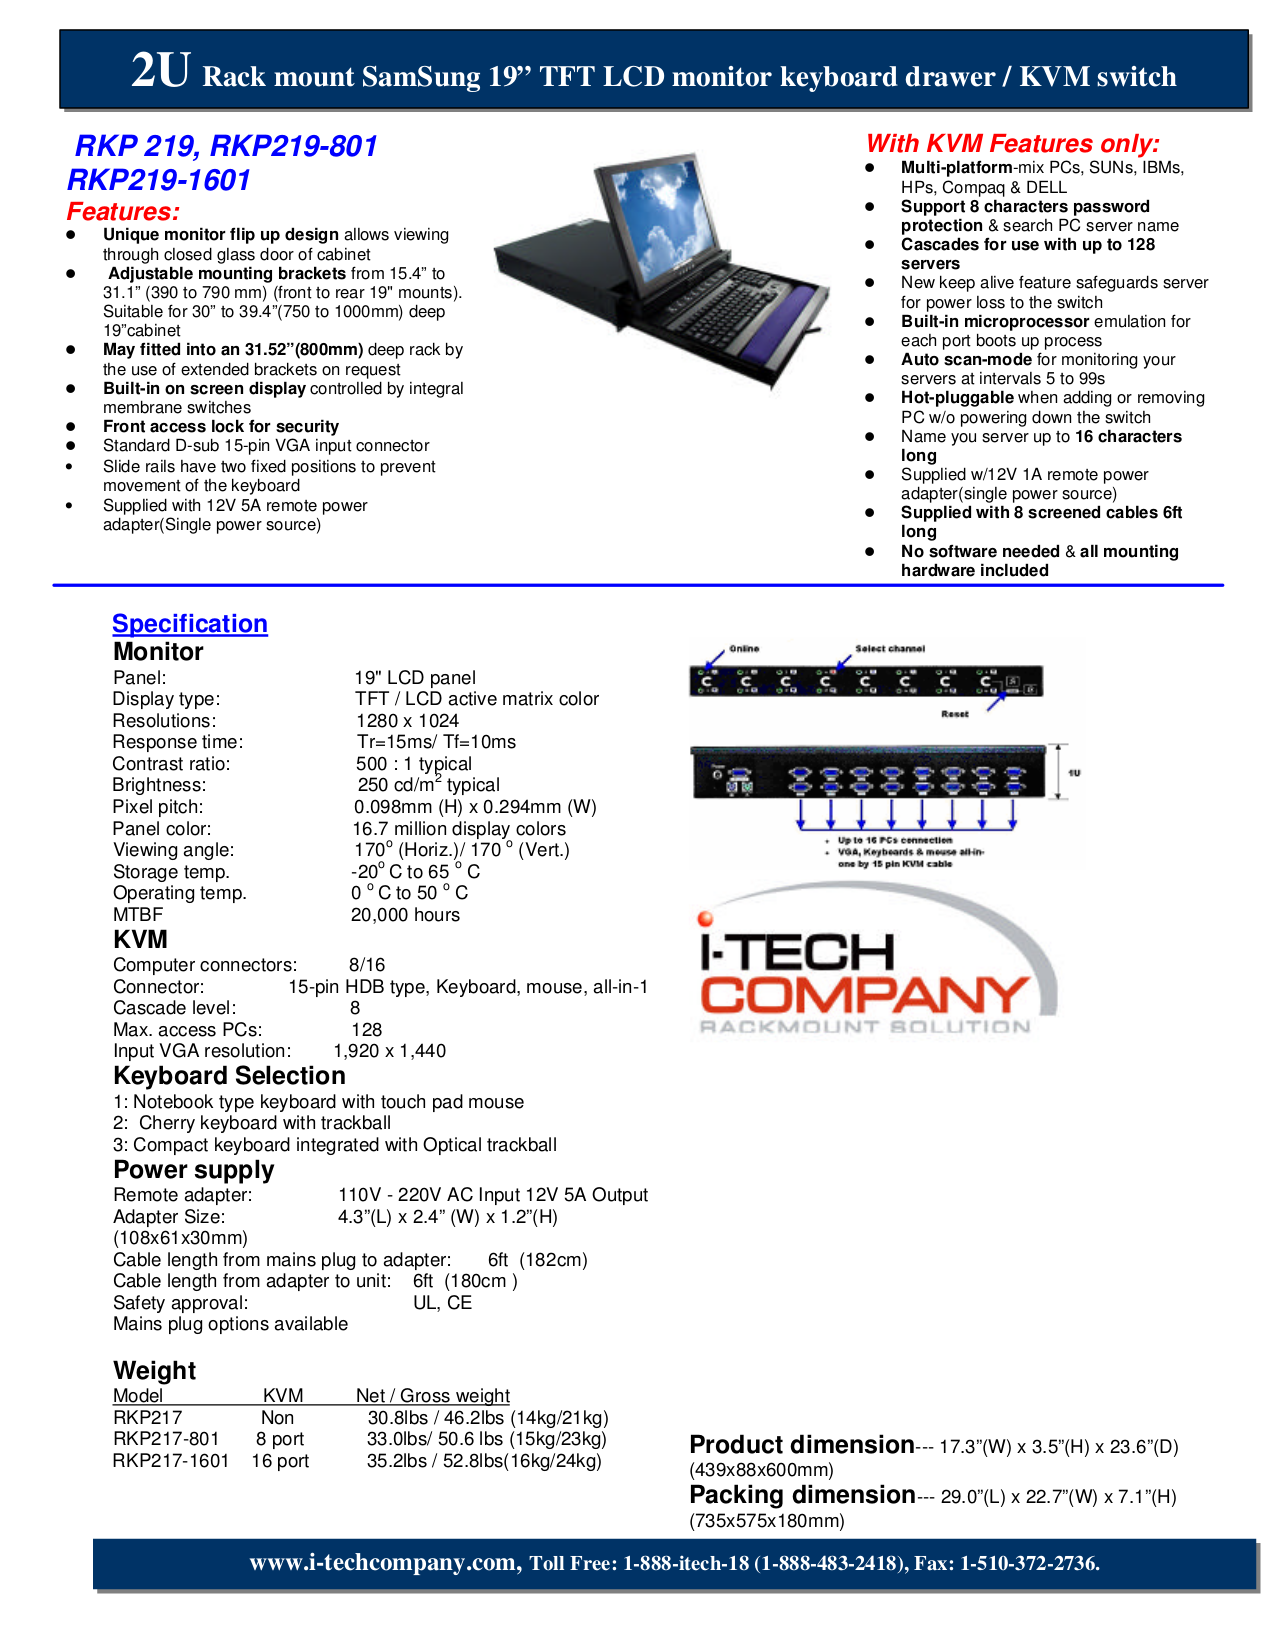 pdf for I-Tech Other RKP219-801 Keyboard Drawers manual